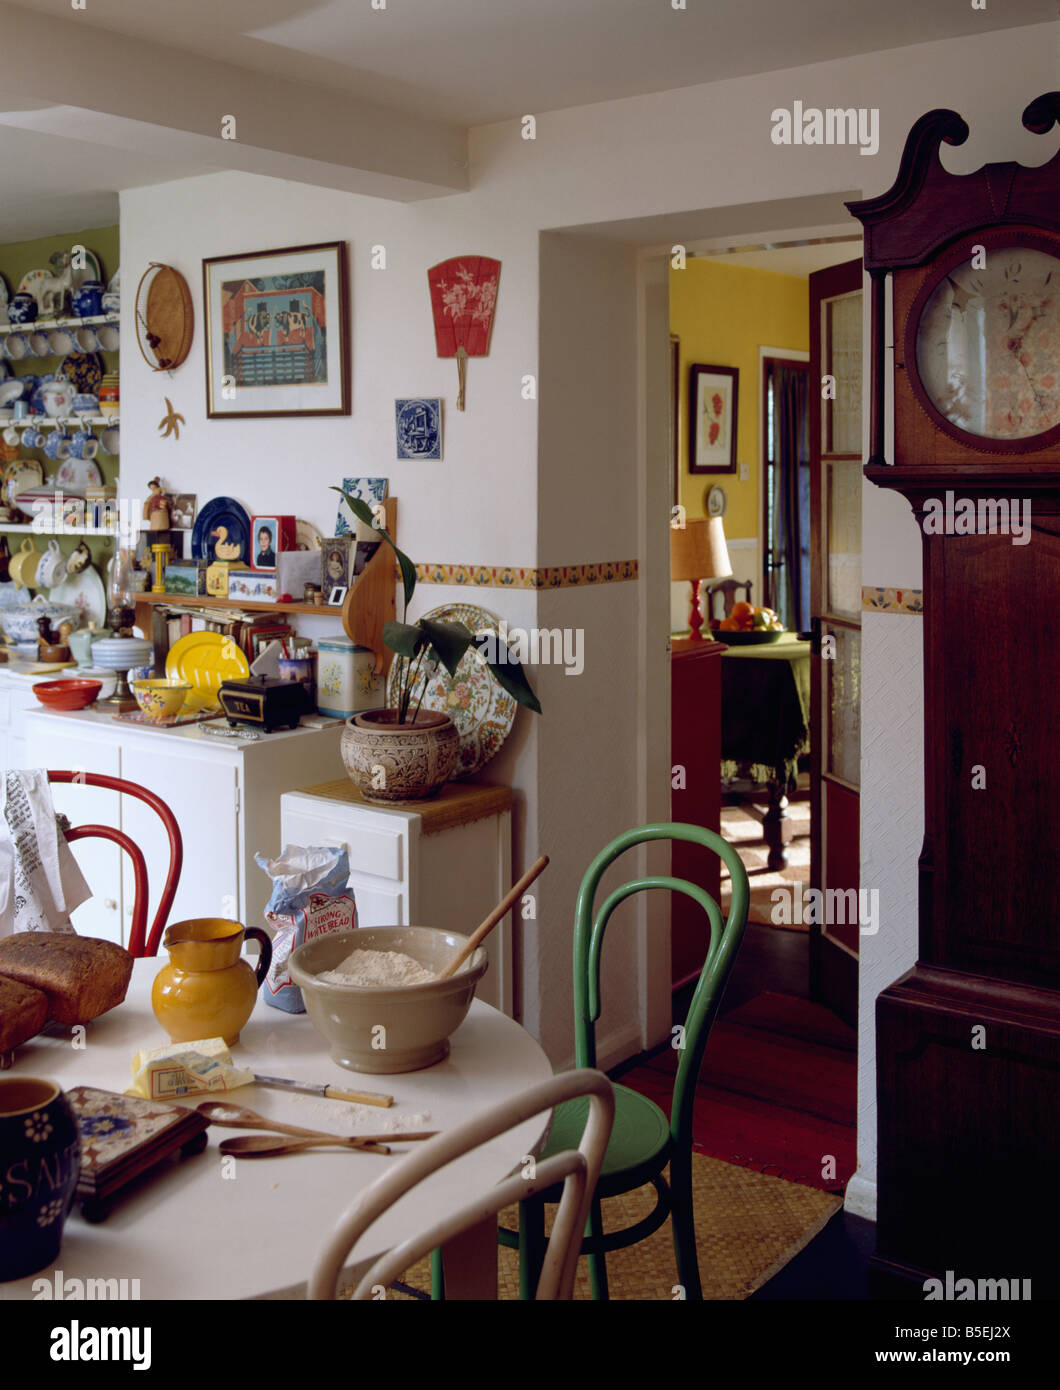 Longcase Clock In Cottage Kitchen With Painted Red And Green Bentwood Chairs  At Table With Cake Making Ingredients